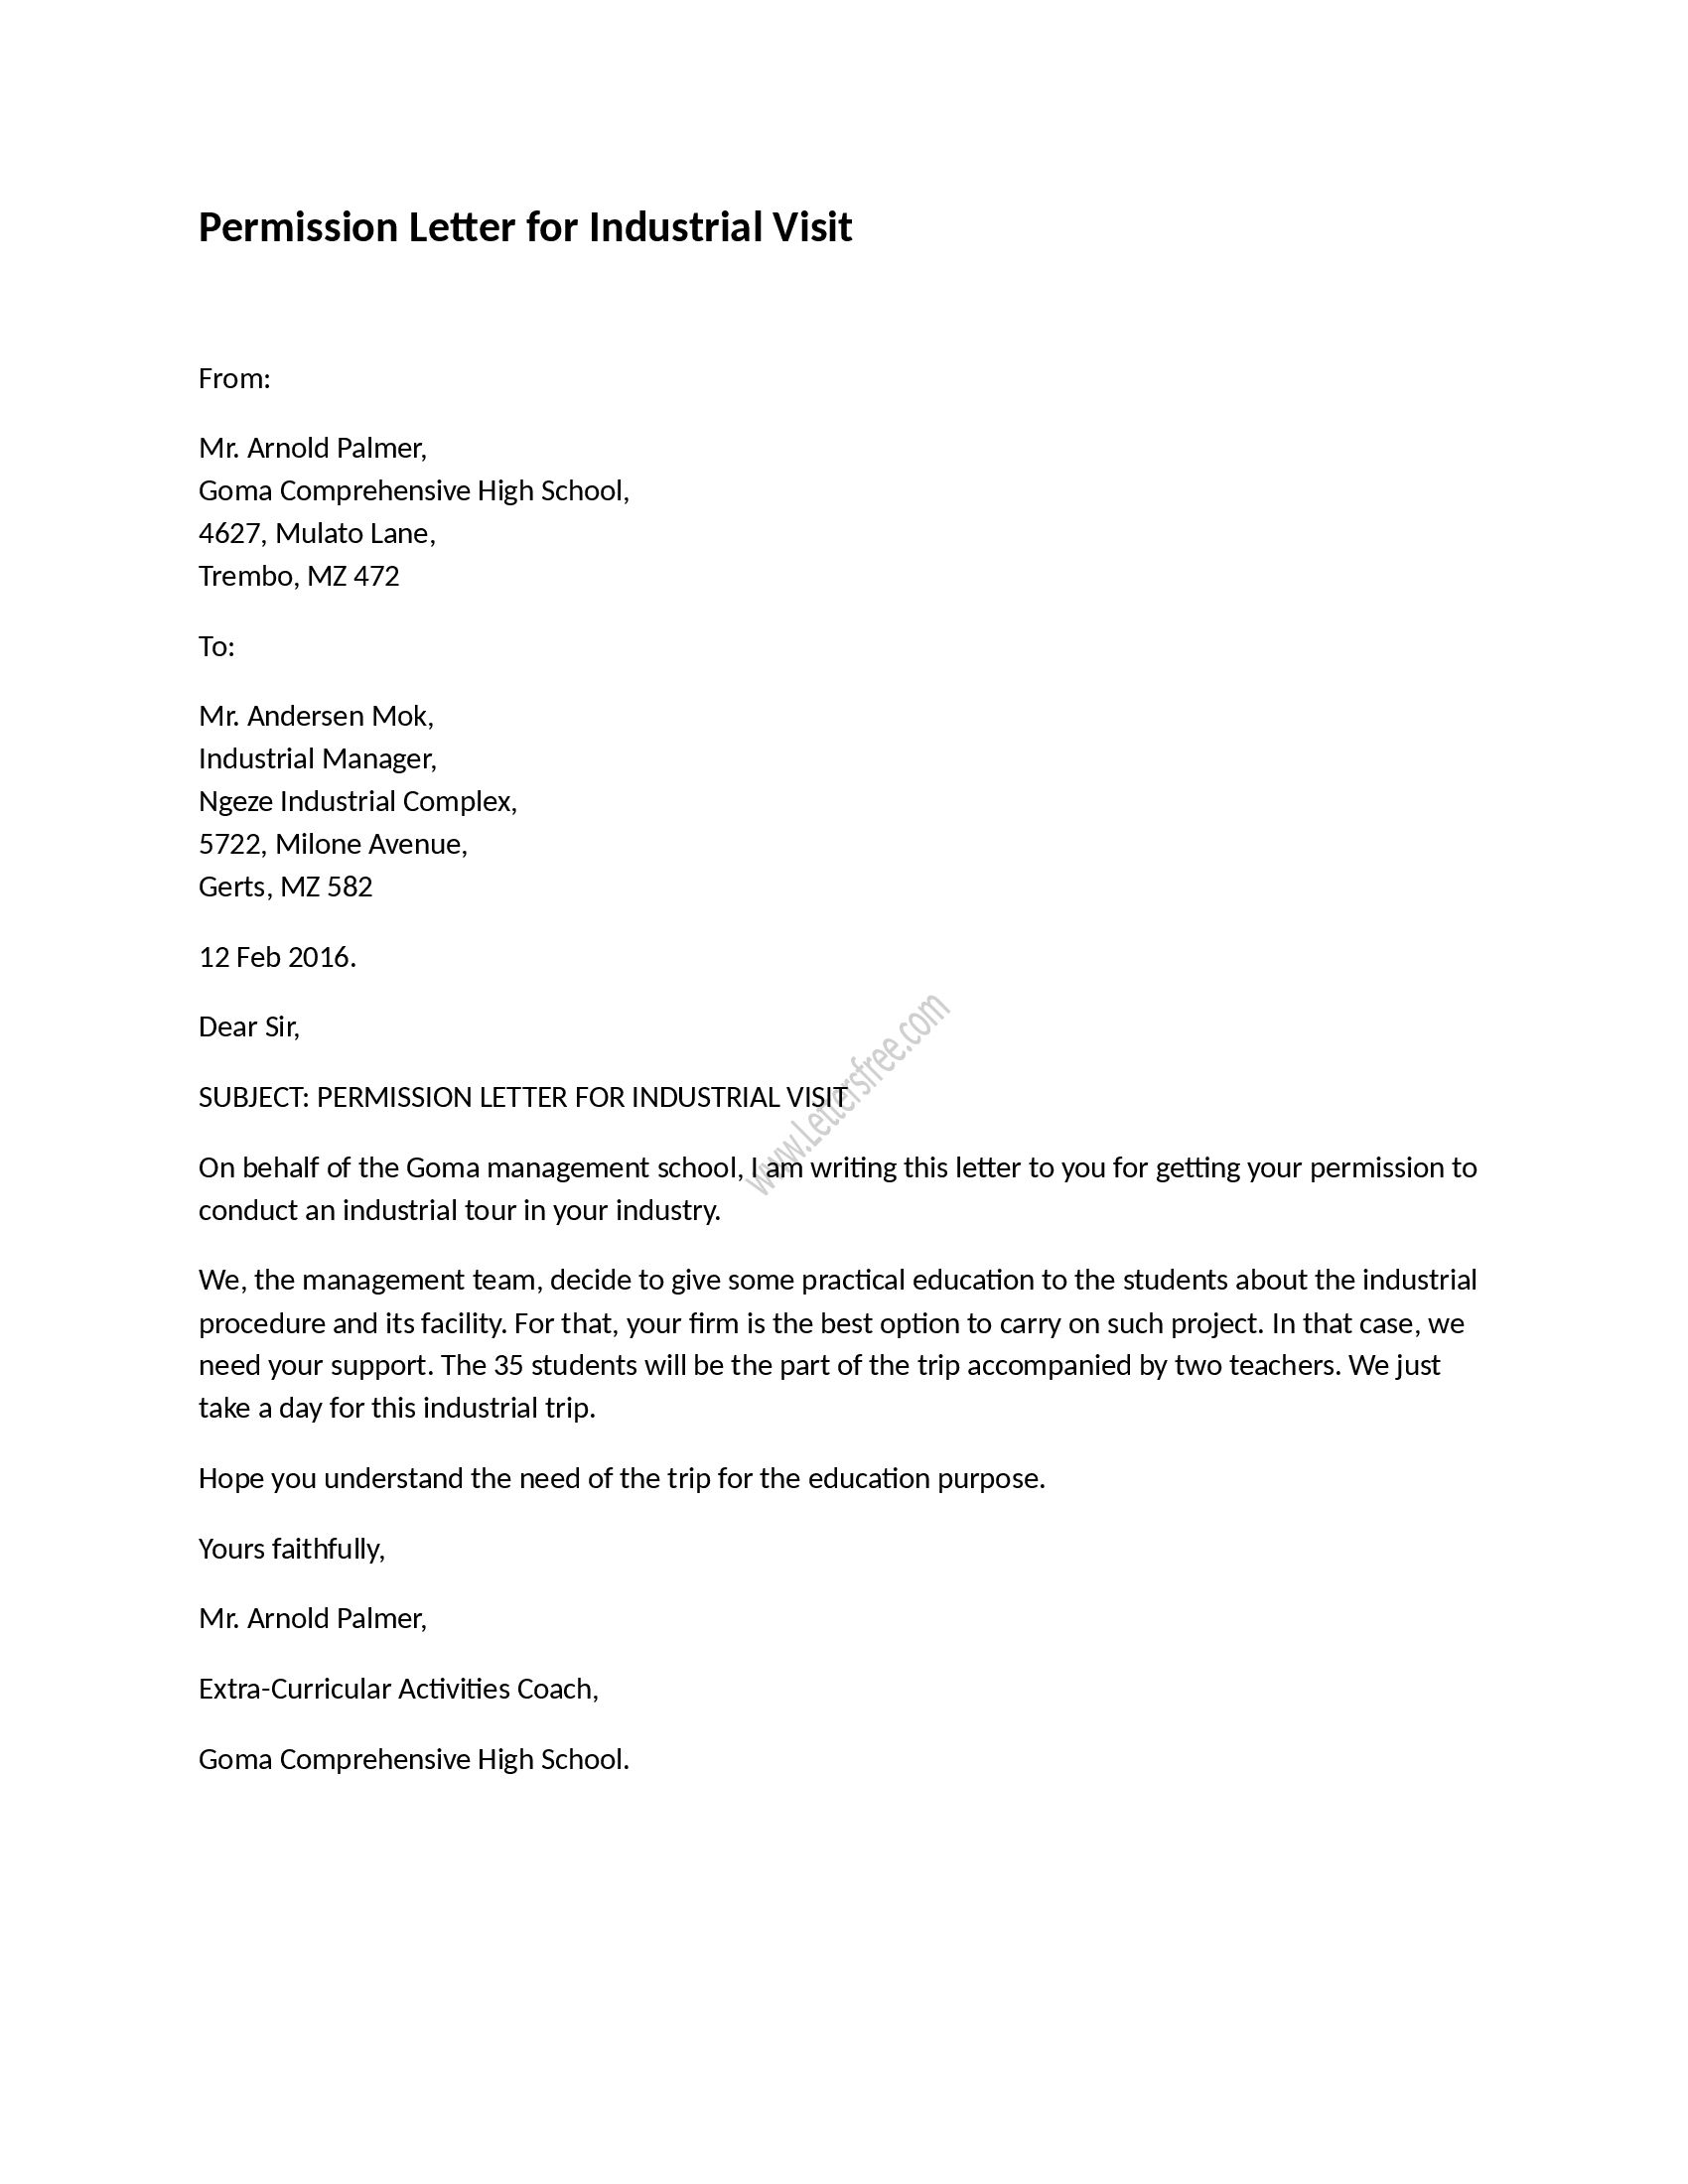 Sample Letter Of Disagreement Template - Permission Letter for Industrial Visit Pinterest